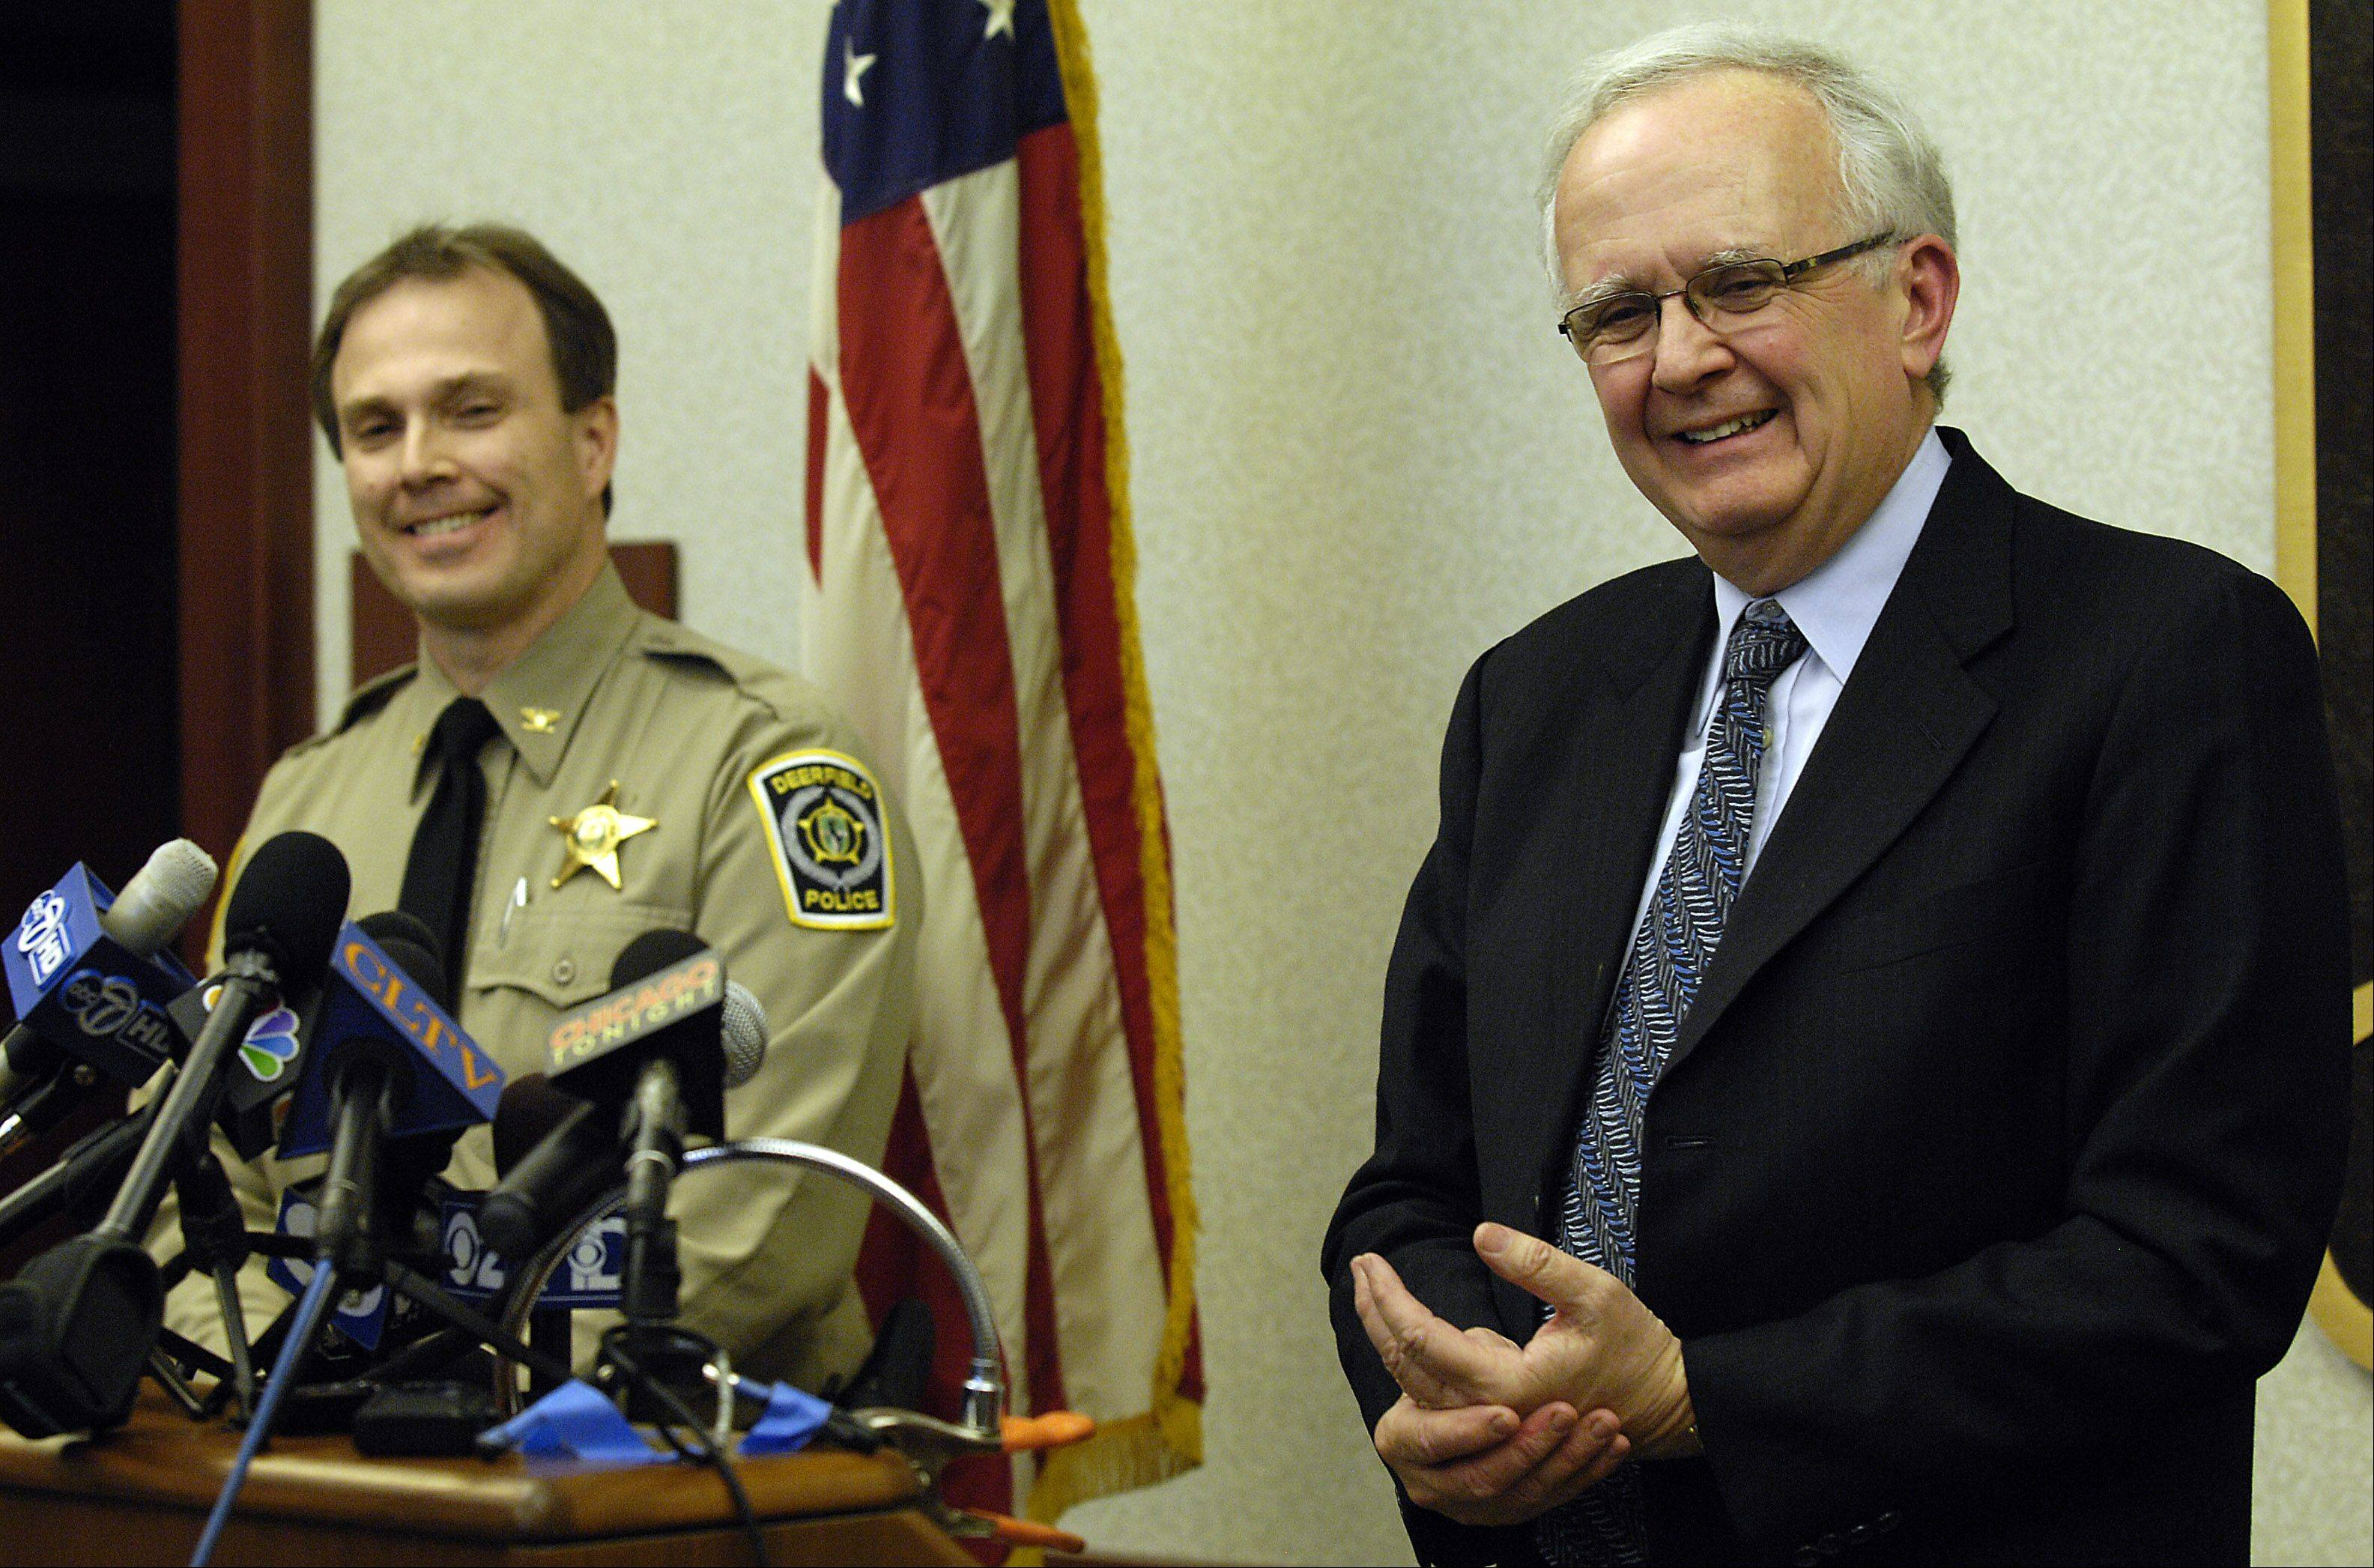 Lake County State's Attorney Michael Waller, right, is at a news conference at the Deerfield Police Department during the Rhoni Reuter homicide investigation in 2009.